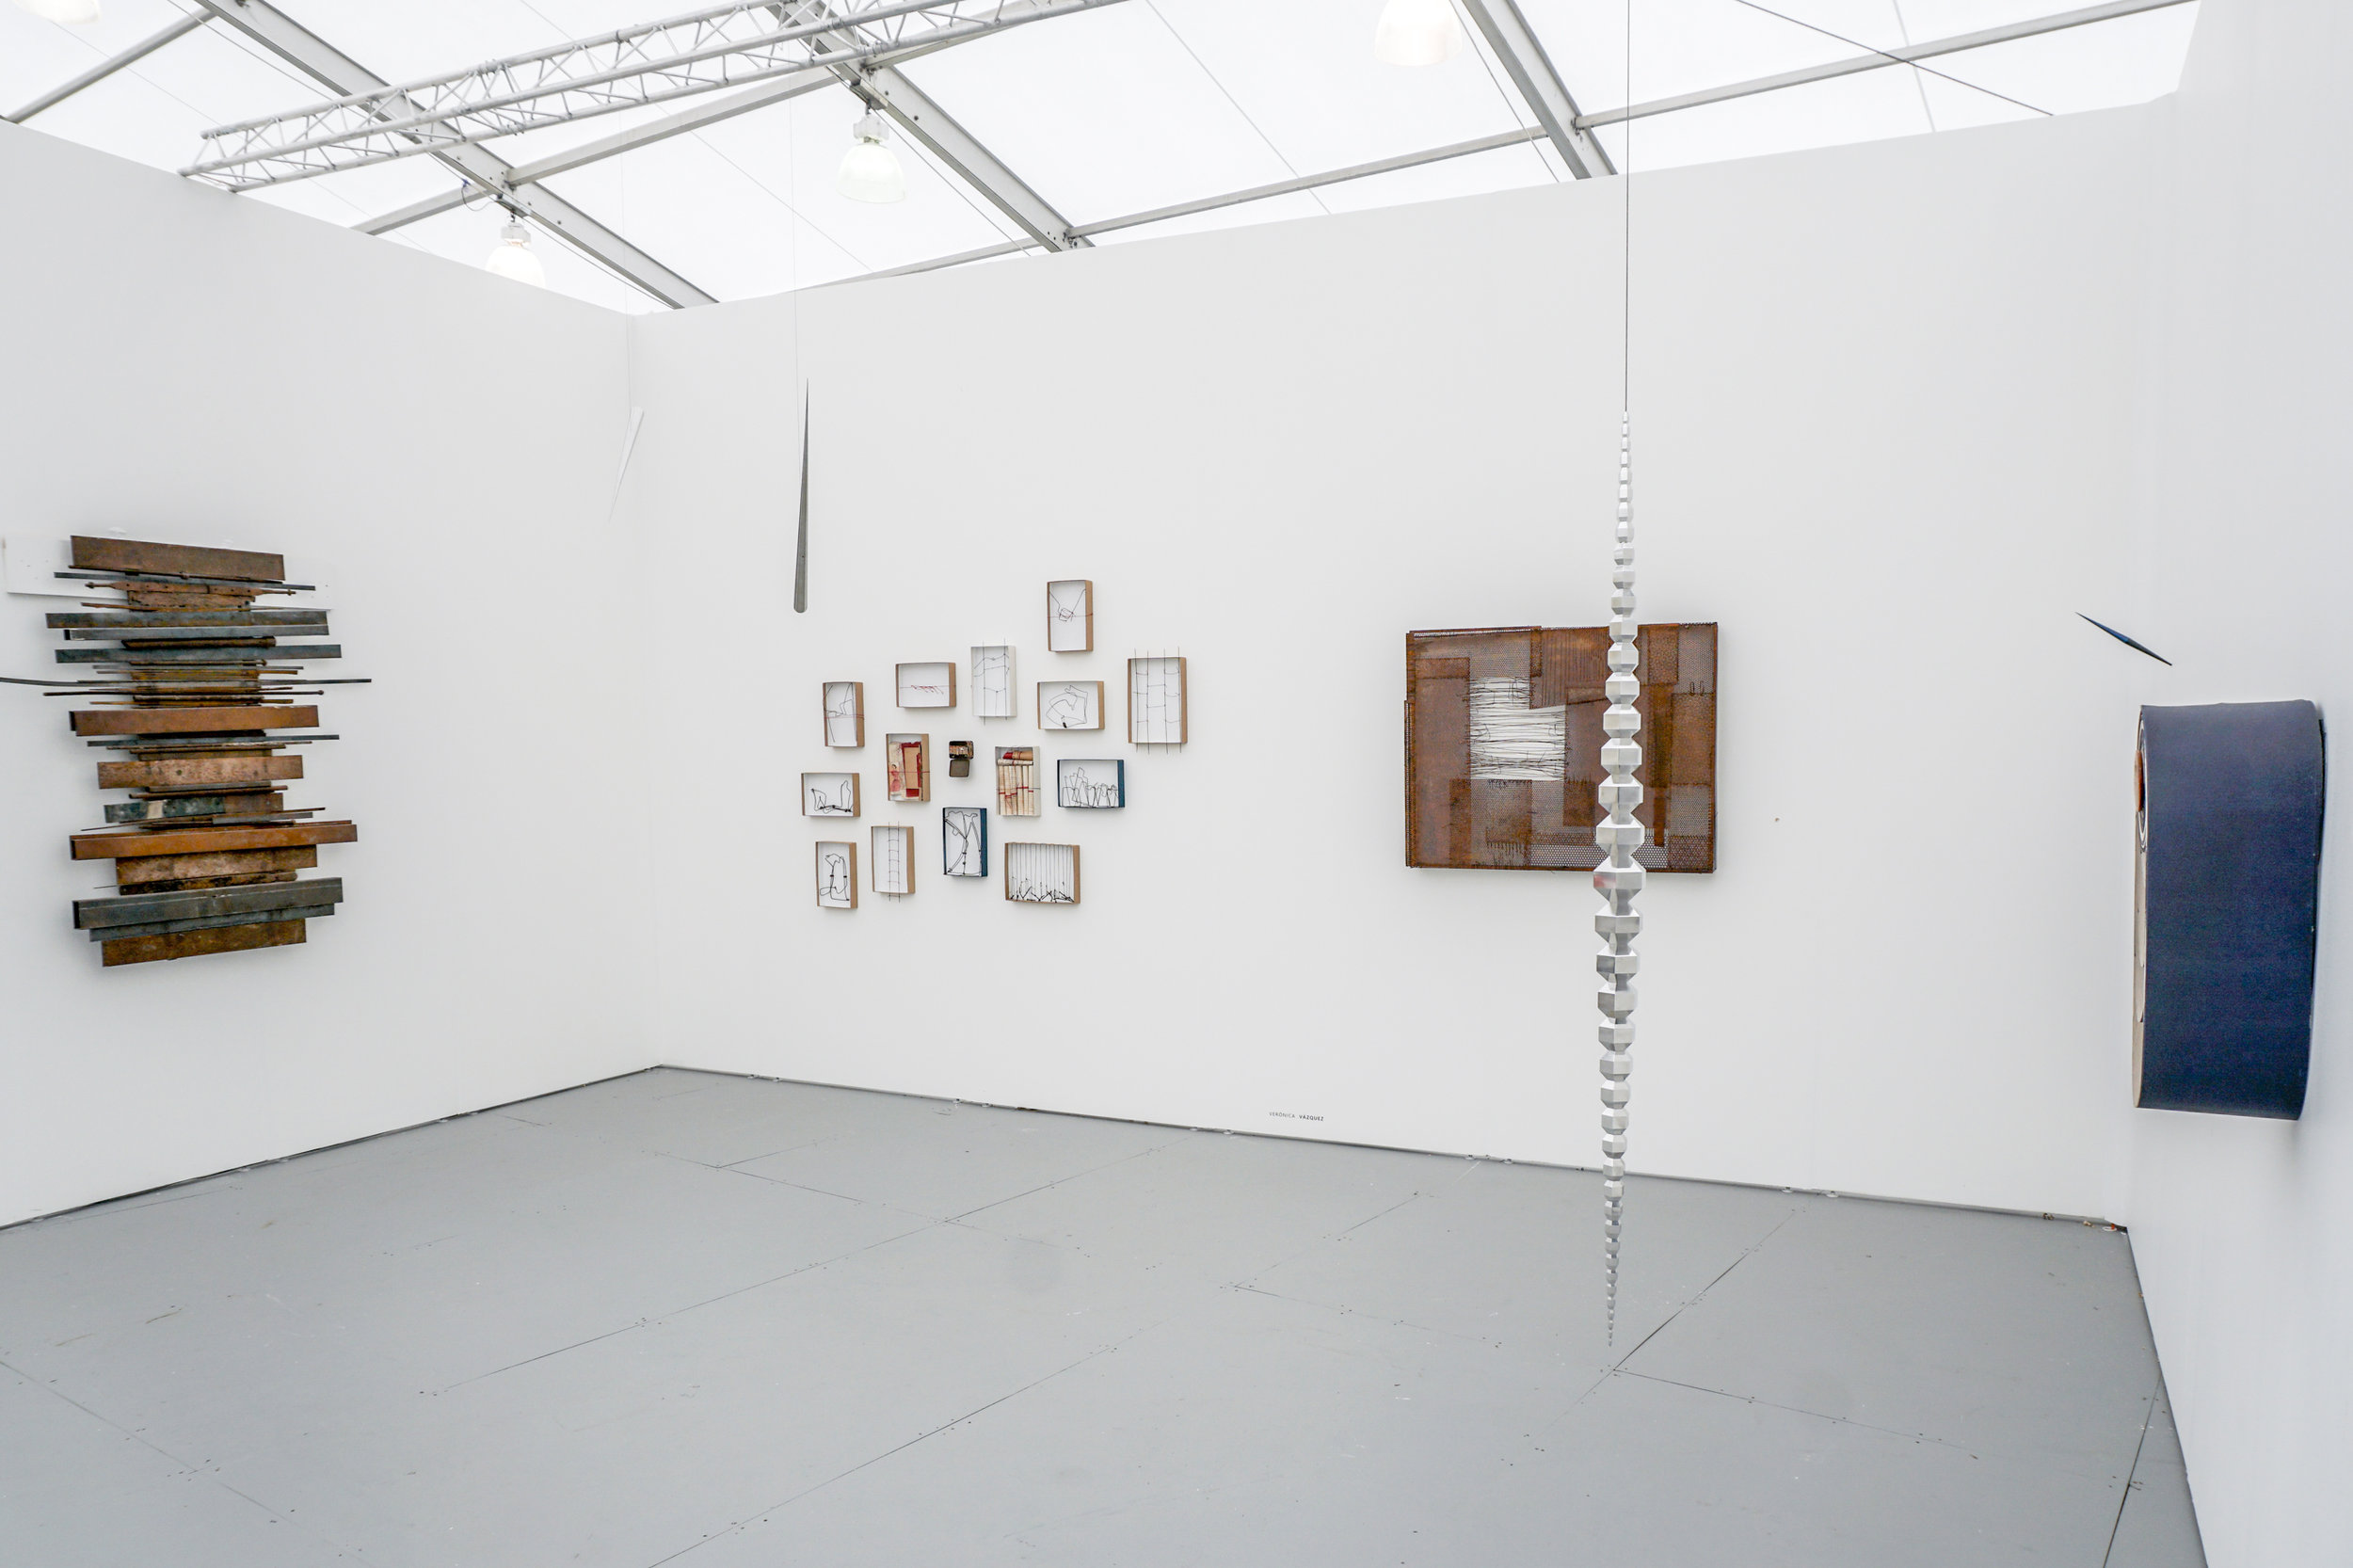 Works by Veronica Vazquez and Artur Lescher, installation view at Untitled Miami Fair. Photo courtesy of Piero Atchugarry Gallery.